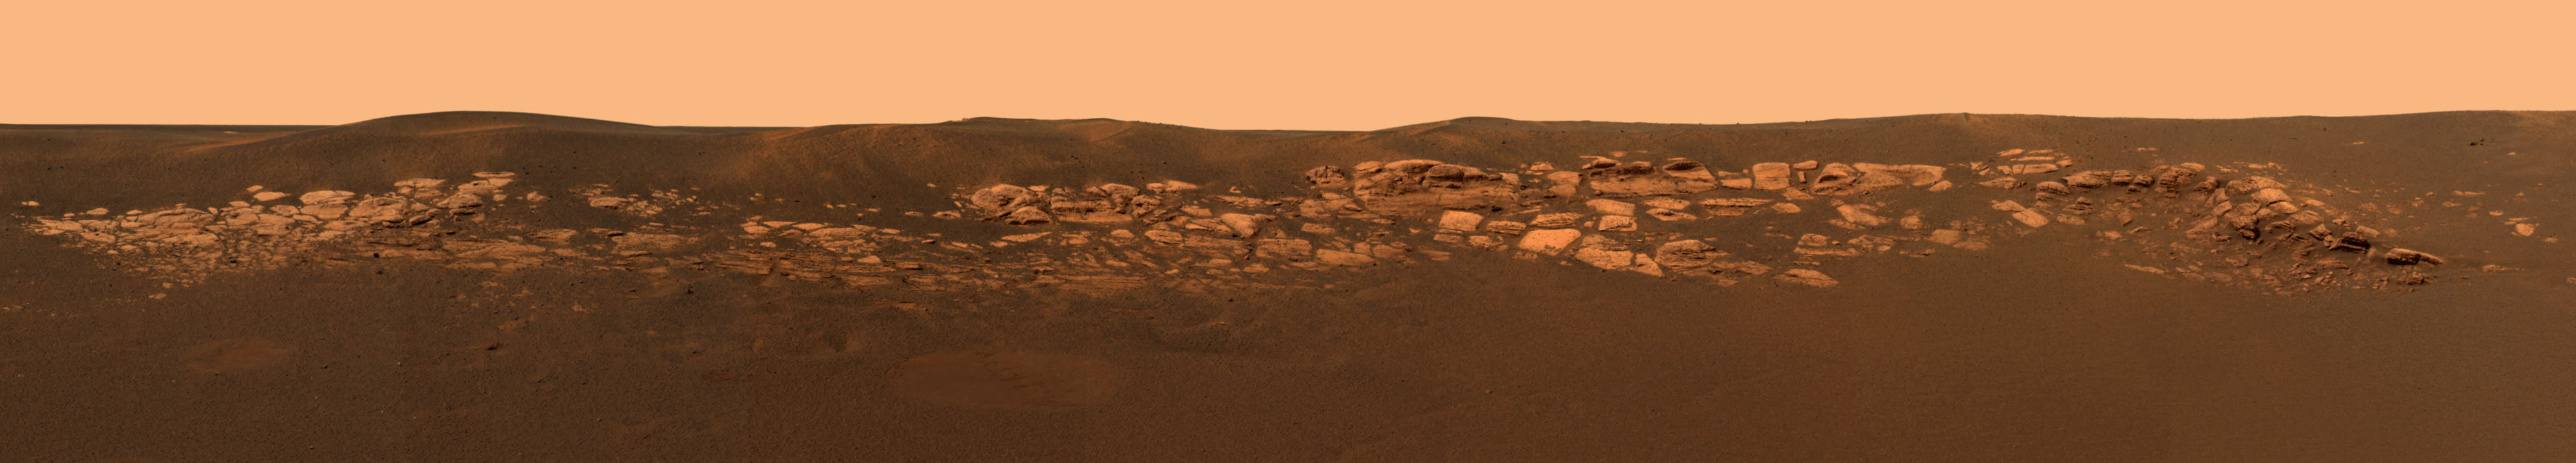 "Mars Rover ""Opportunity"" Images"